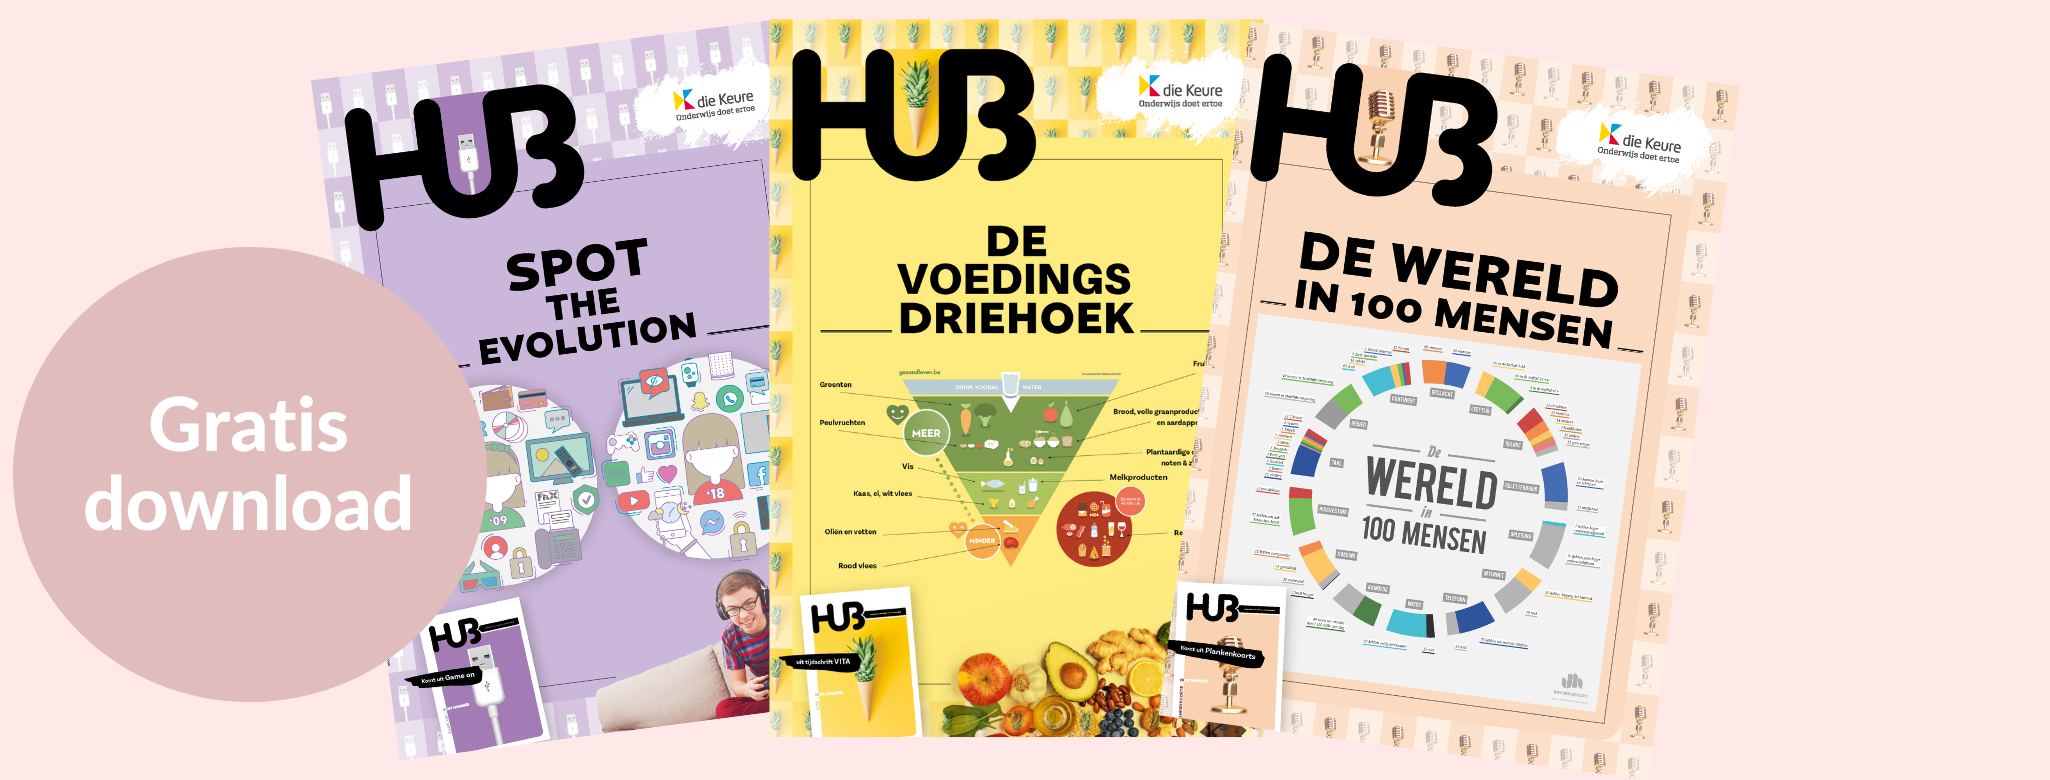 Gratis download | Hub | die Keure